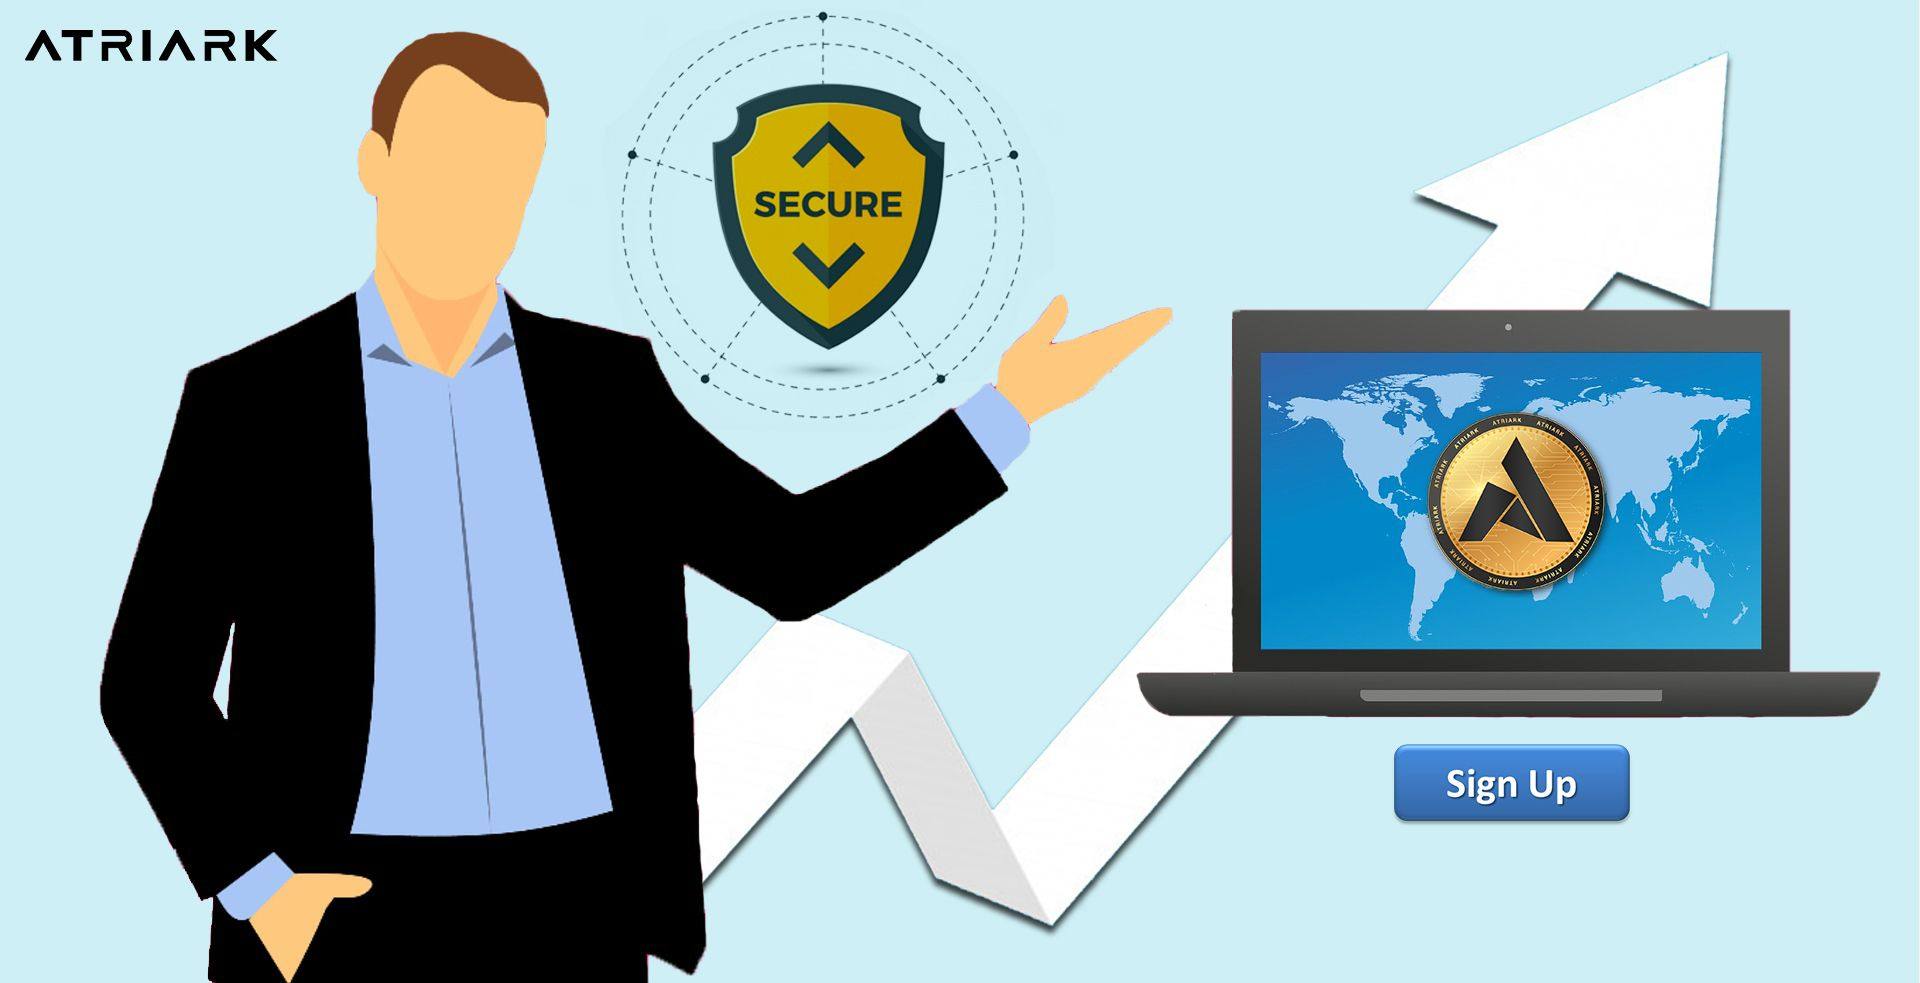 The new AIbased platform gives more secure and safe